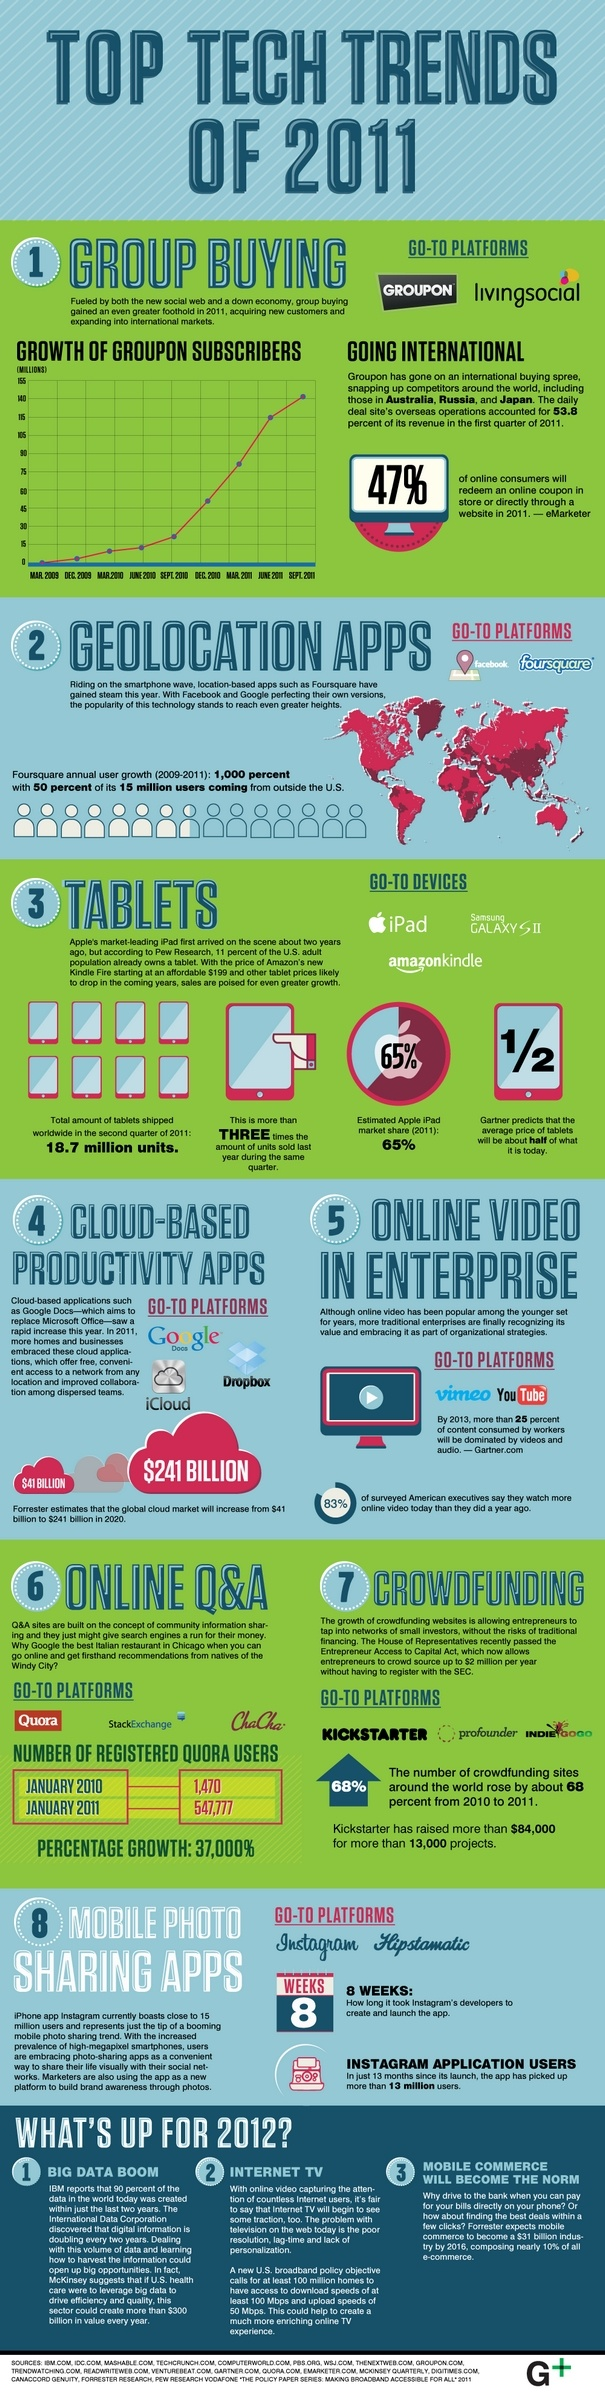 Top Tech Trends of 2011 Infographic